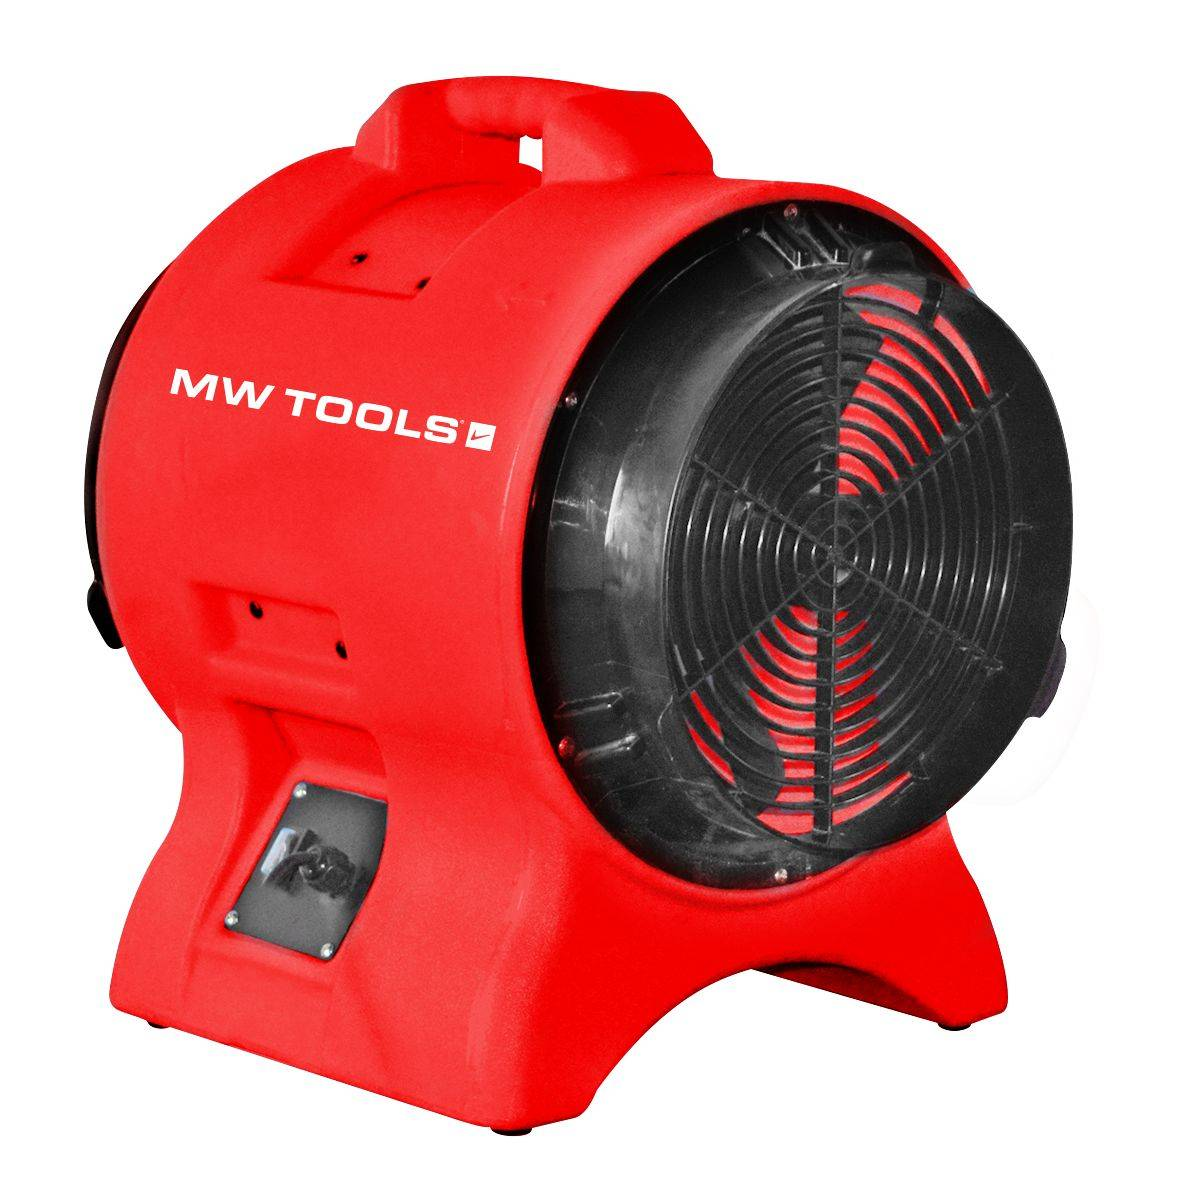 Mw-tools Ventilateur extracteur portable 200 mm - 250 W MW-Tools MV200PP